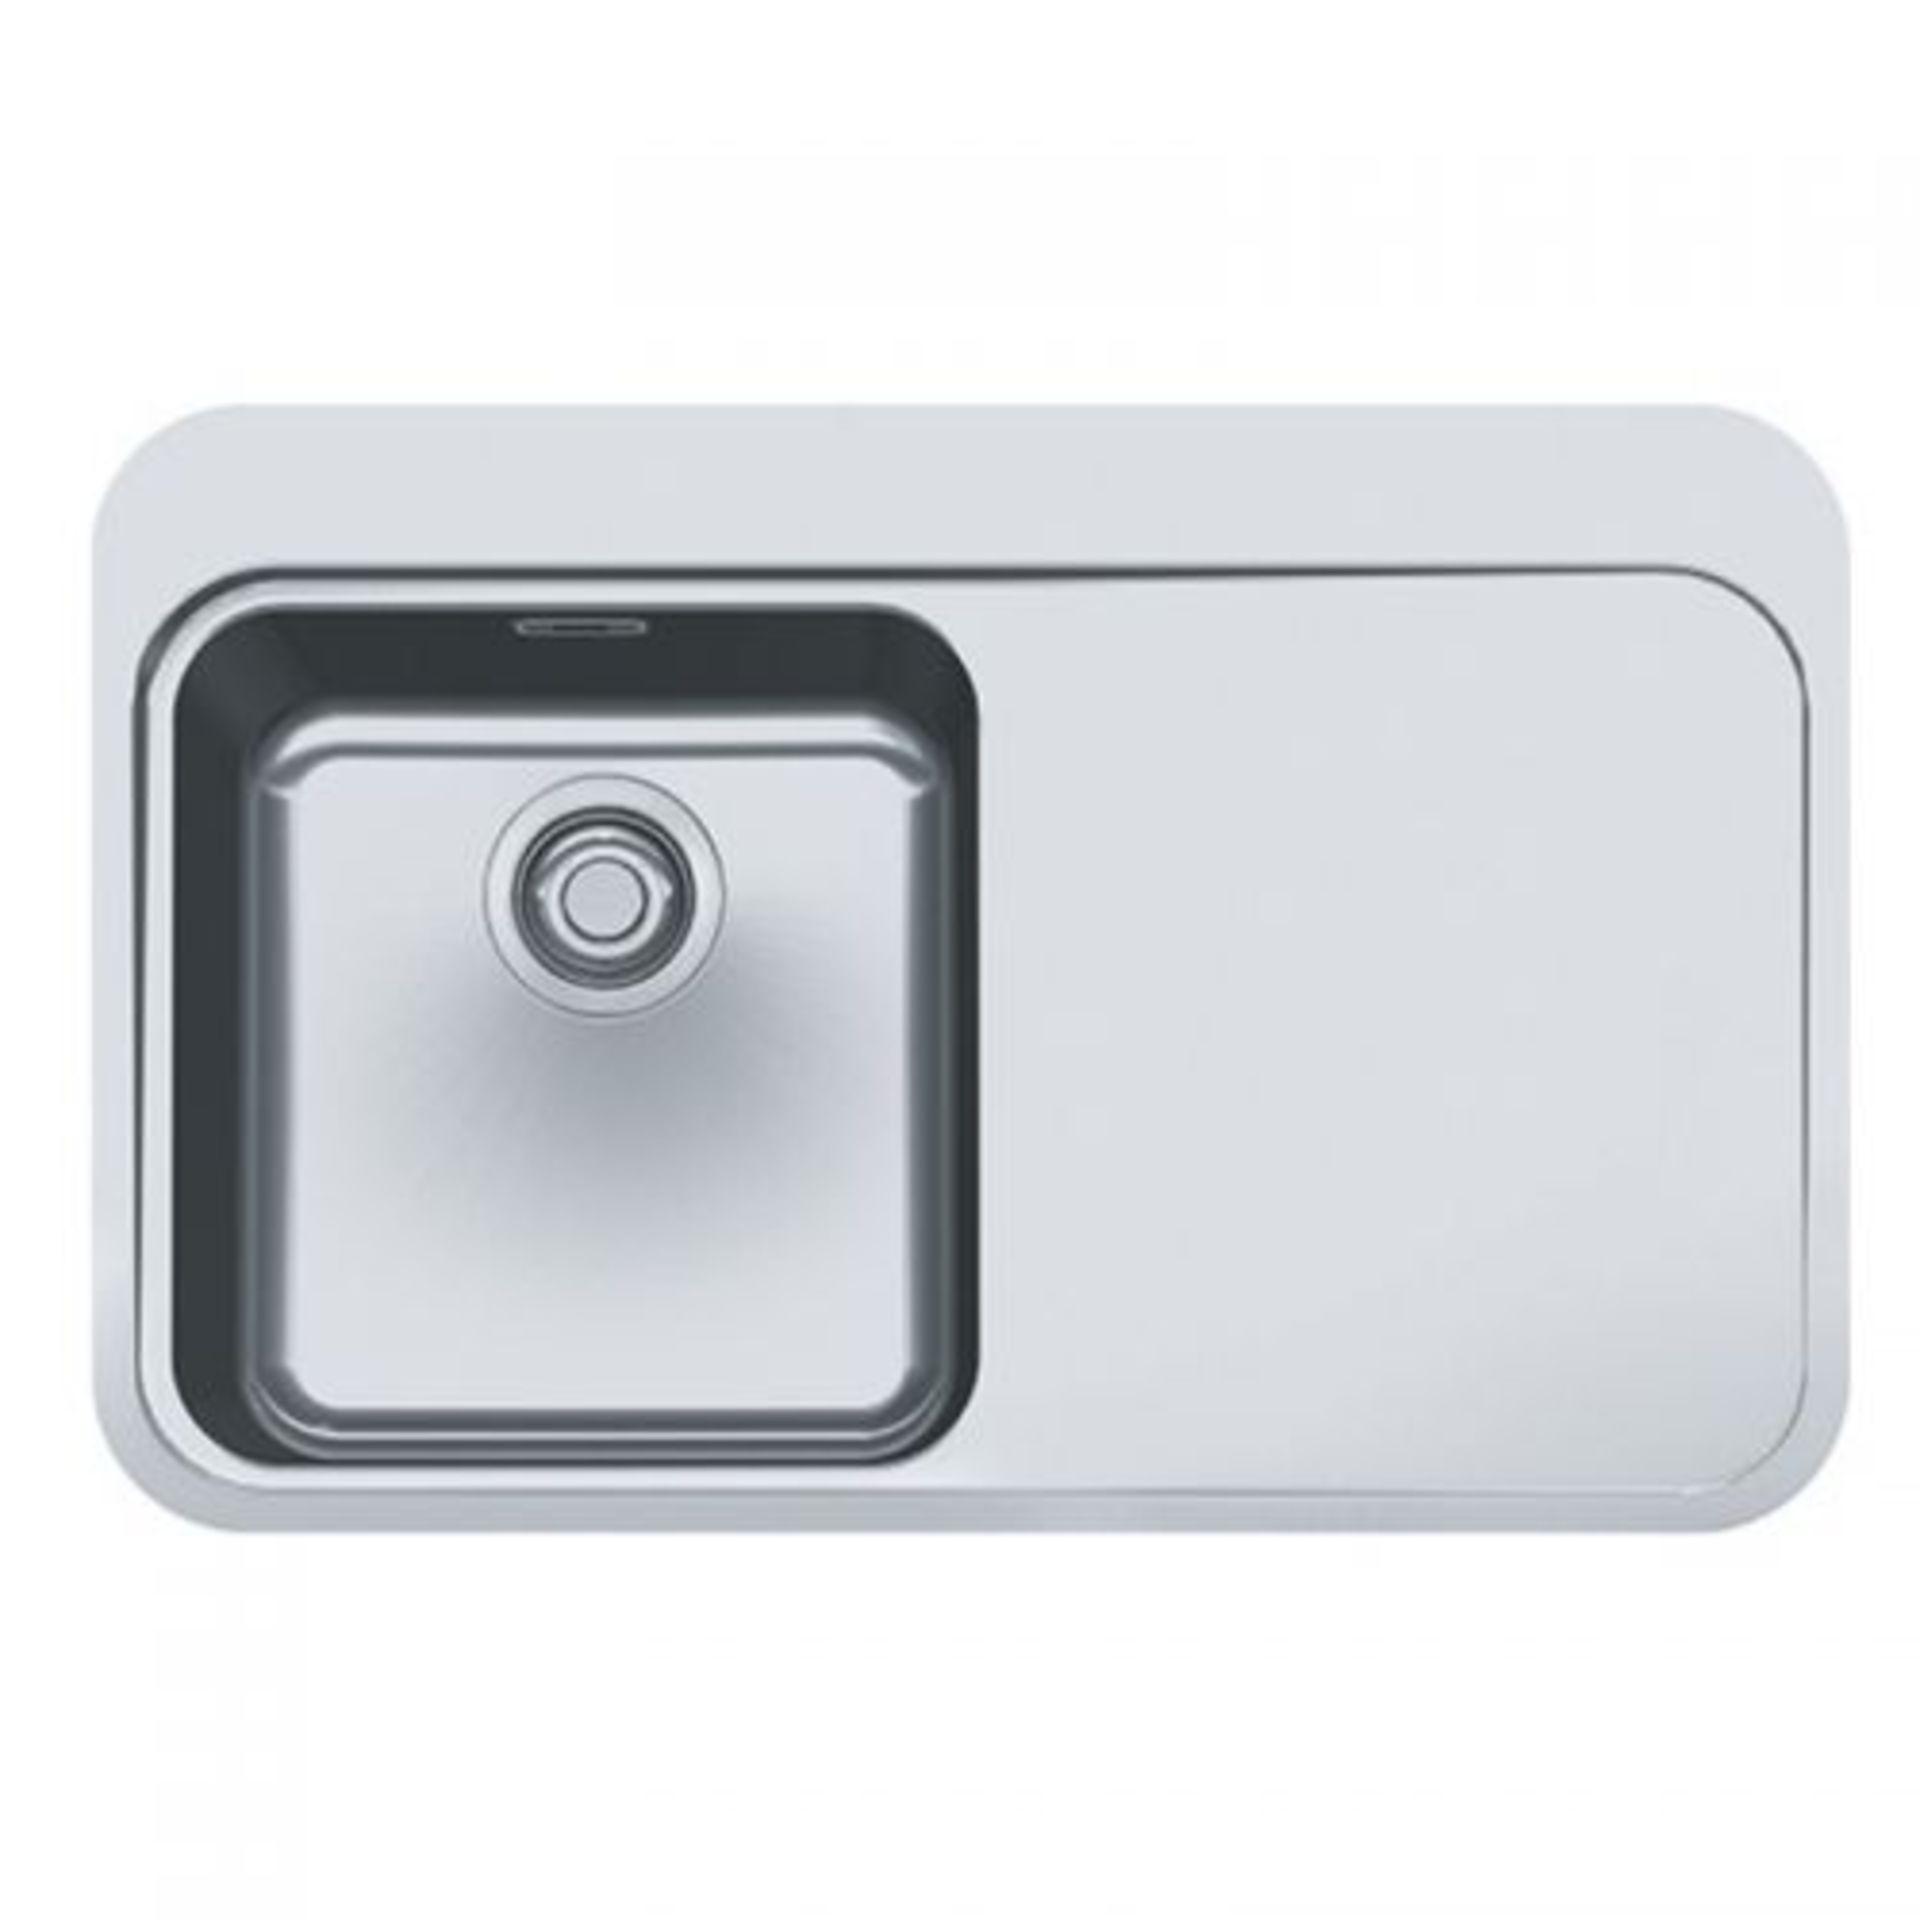 Boxed Brand New Factory Sealed Franke Sink- Model- SNX 211 780x510mm, RRP-£295.00